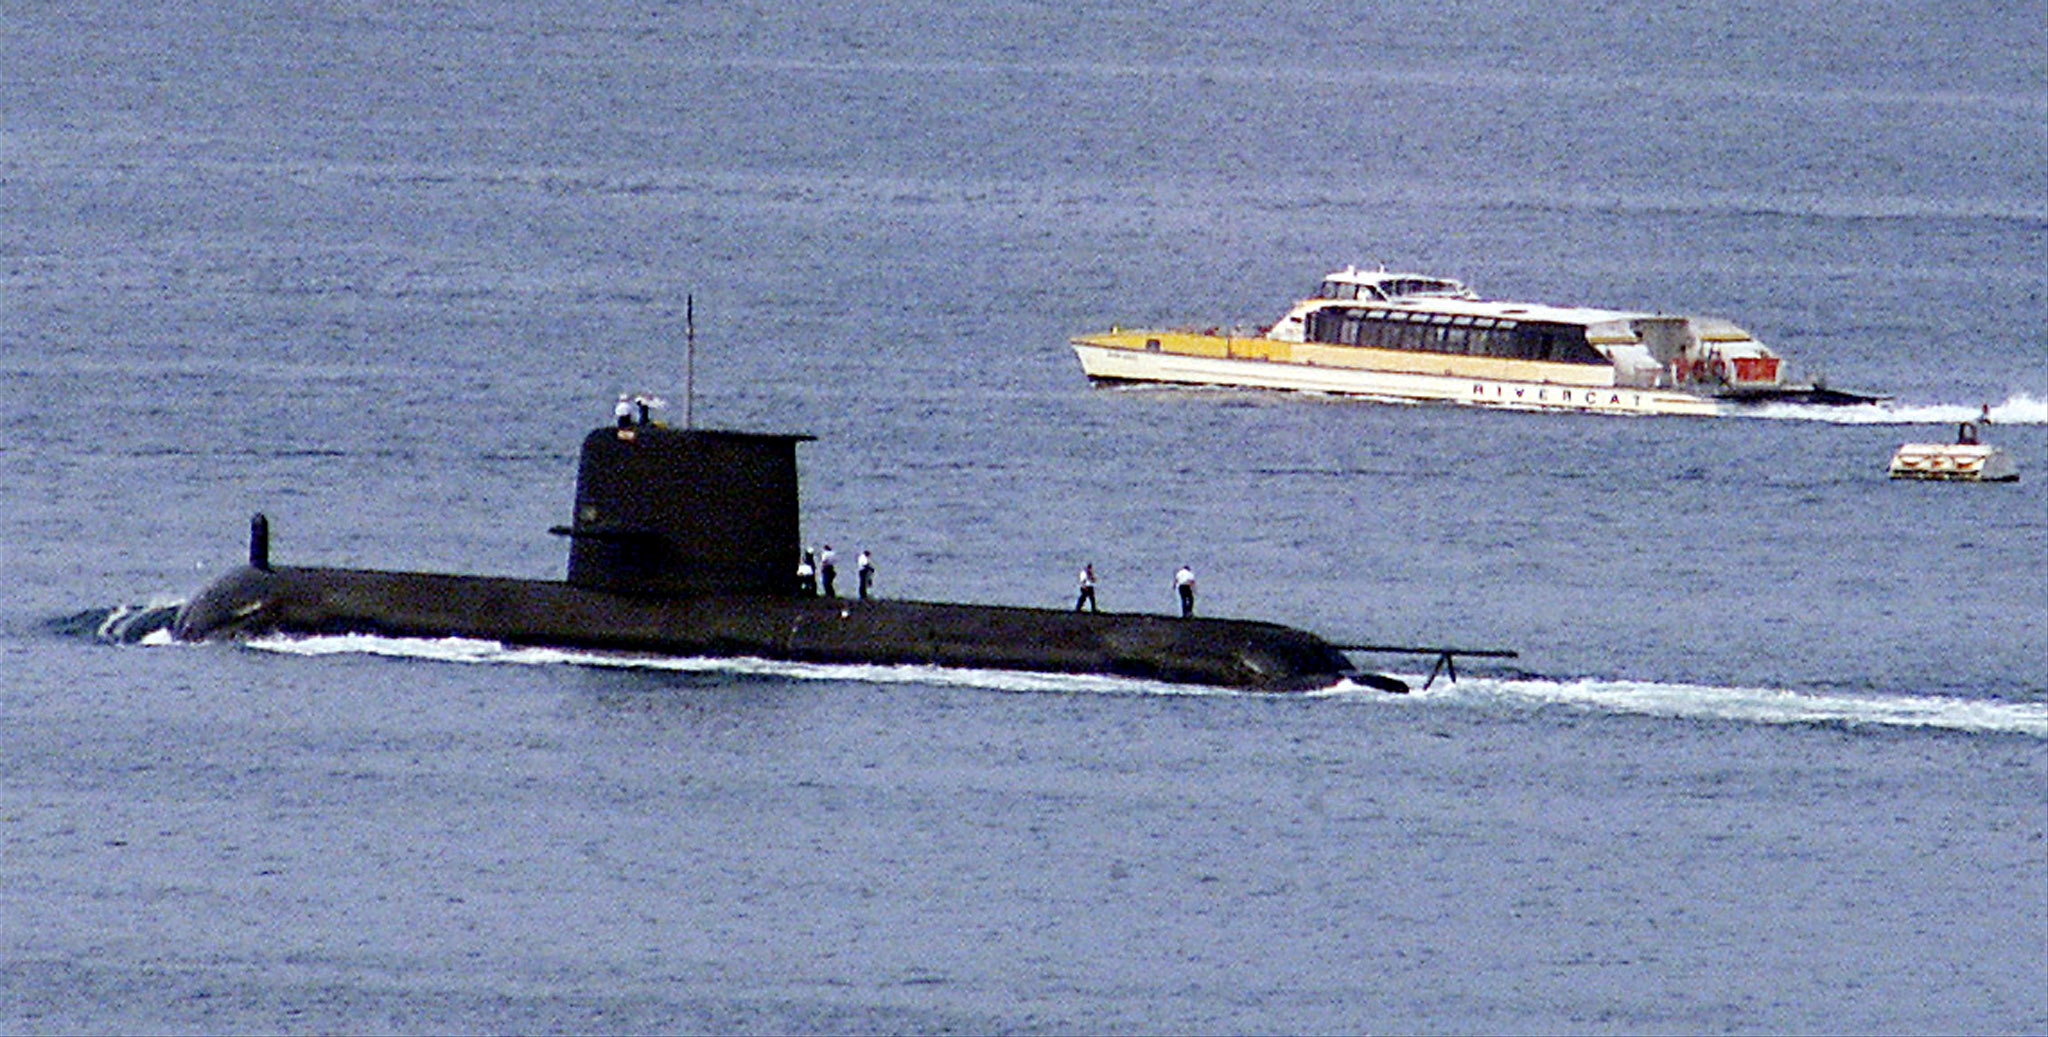 (File Photo) A Rivercat ferry passes by the Royal Australian Navy's Collins-class submarine HMAS Waller as it leaves Sydney Harbour on May 4, 2020. The Australian government has considered extending the life of the Collins class as it examines the fate of its next-generation sub program.